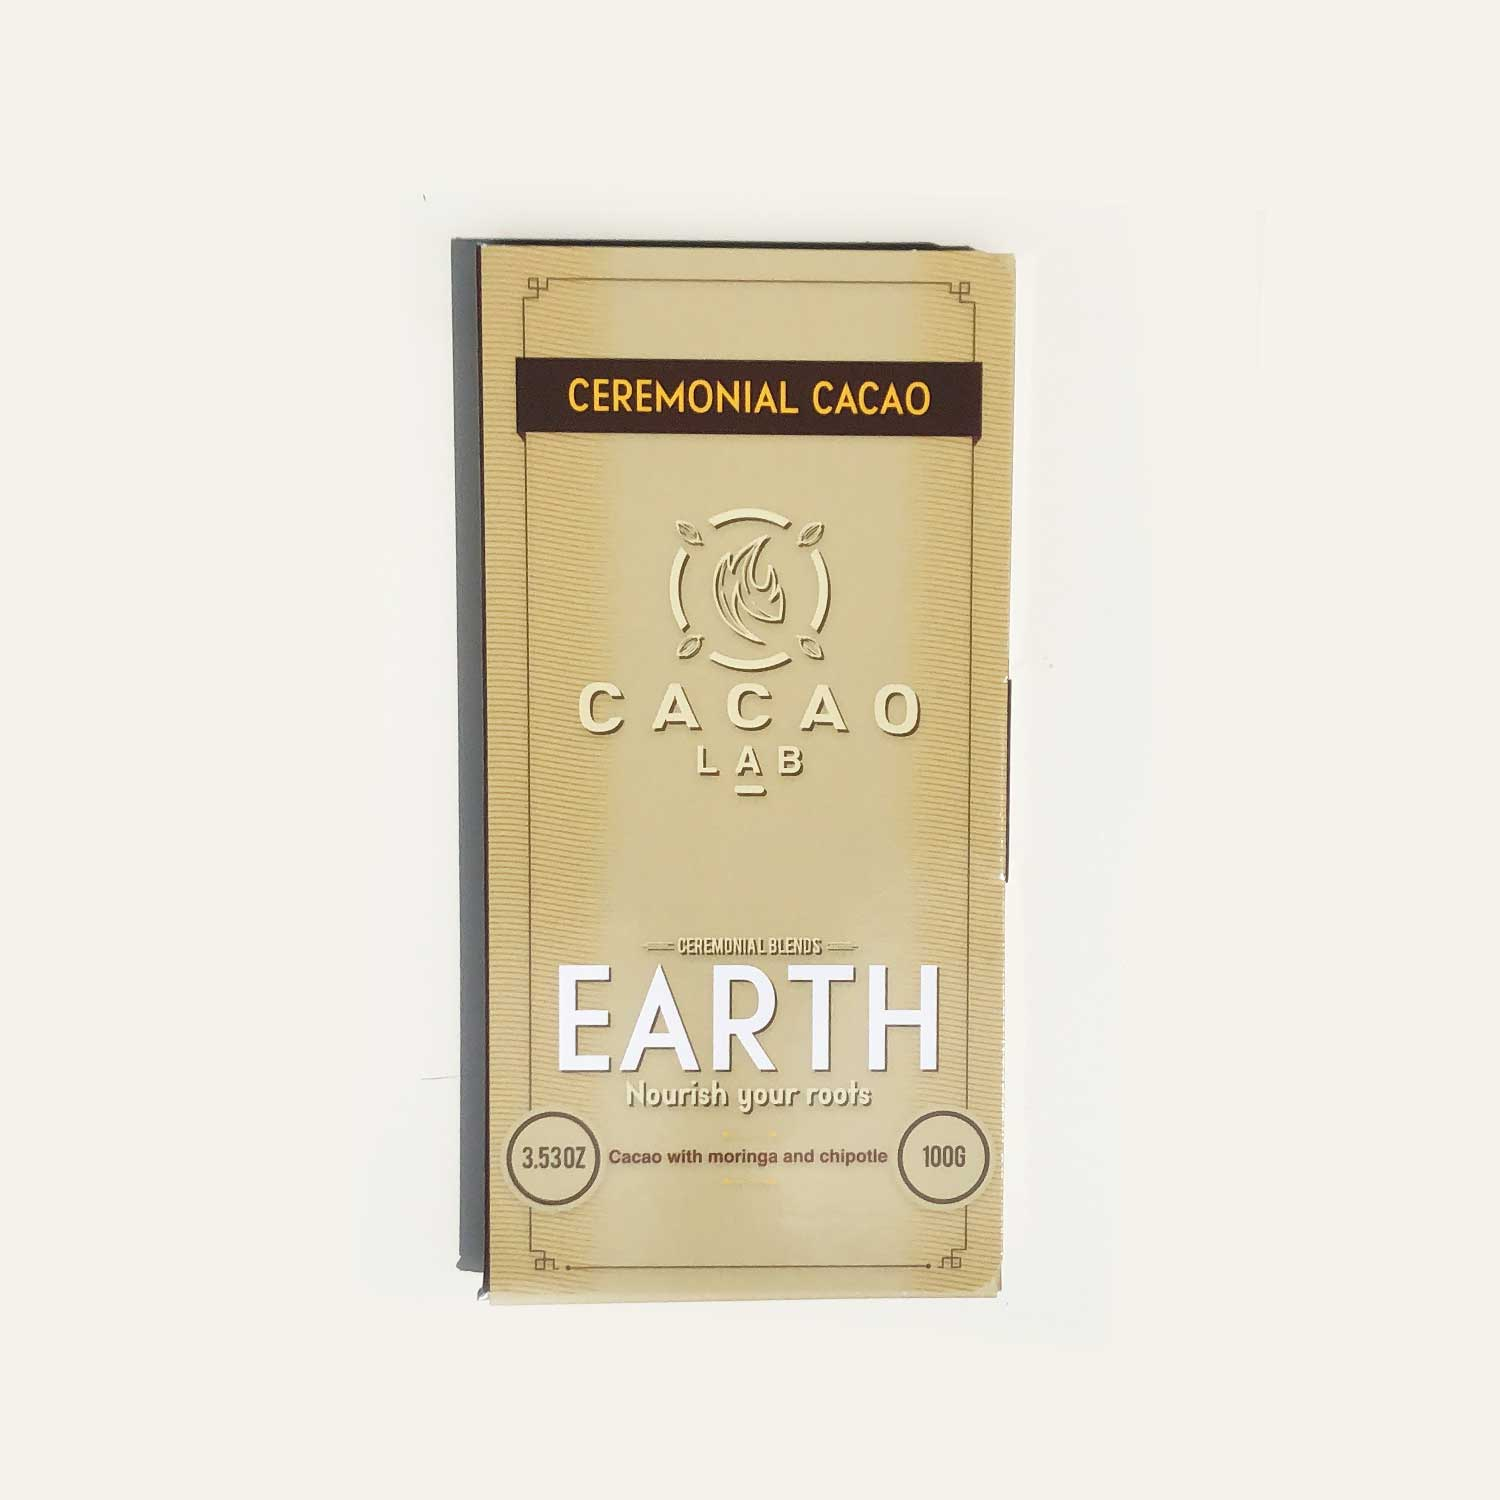 Earth Element - EARTH IS OUR FOUNDATION. IT REPRESENTS YOUR PHYSICAL BODY AND EMOTIONAL ROOT SYSTEM. WORKING WITH THE EARTH ELEMENT YOU CAN ORGANIZE YOUR THOUGHTS AND BRING STRUCTURE TO YOUR LIFE. THIS CEREMONY WILL HELP YOU GROUND YOURSELF AND BRING STABILITY BACK INTO YOUR LIFE.